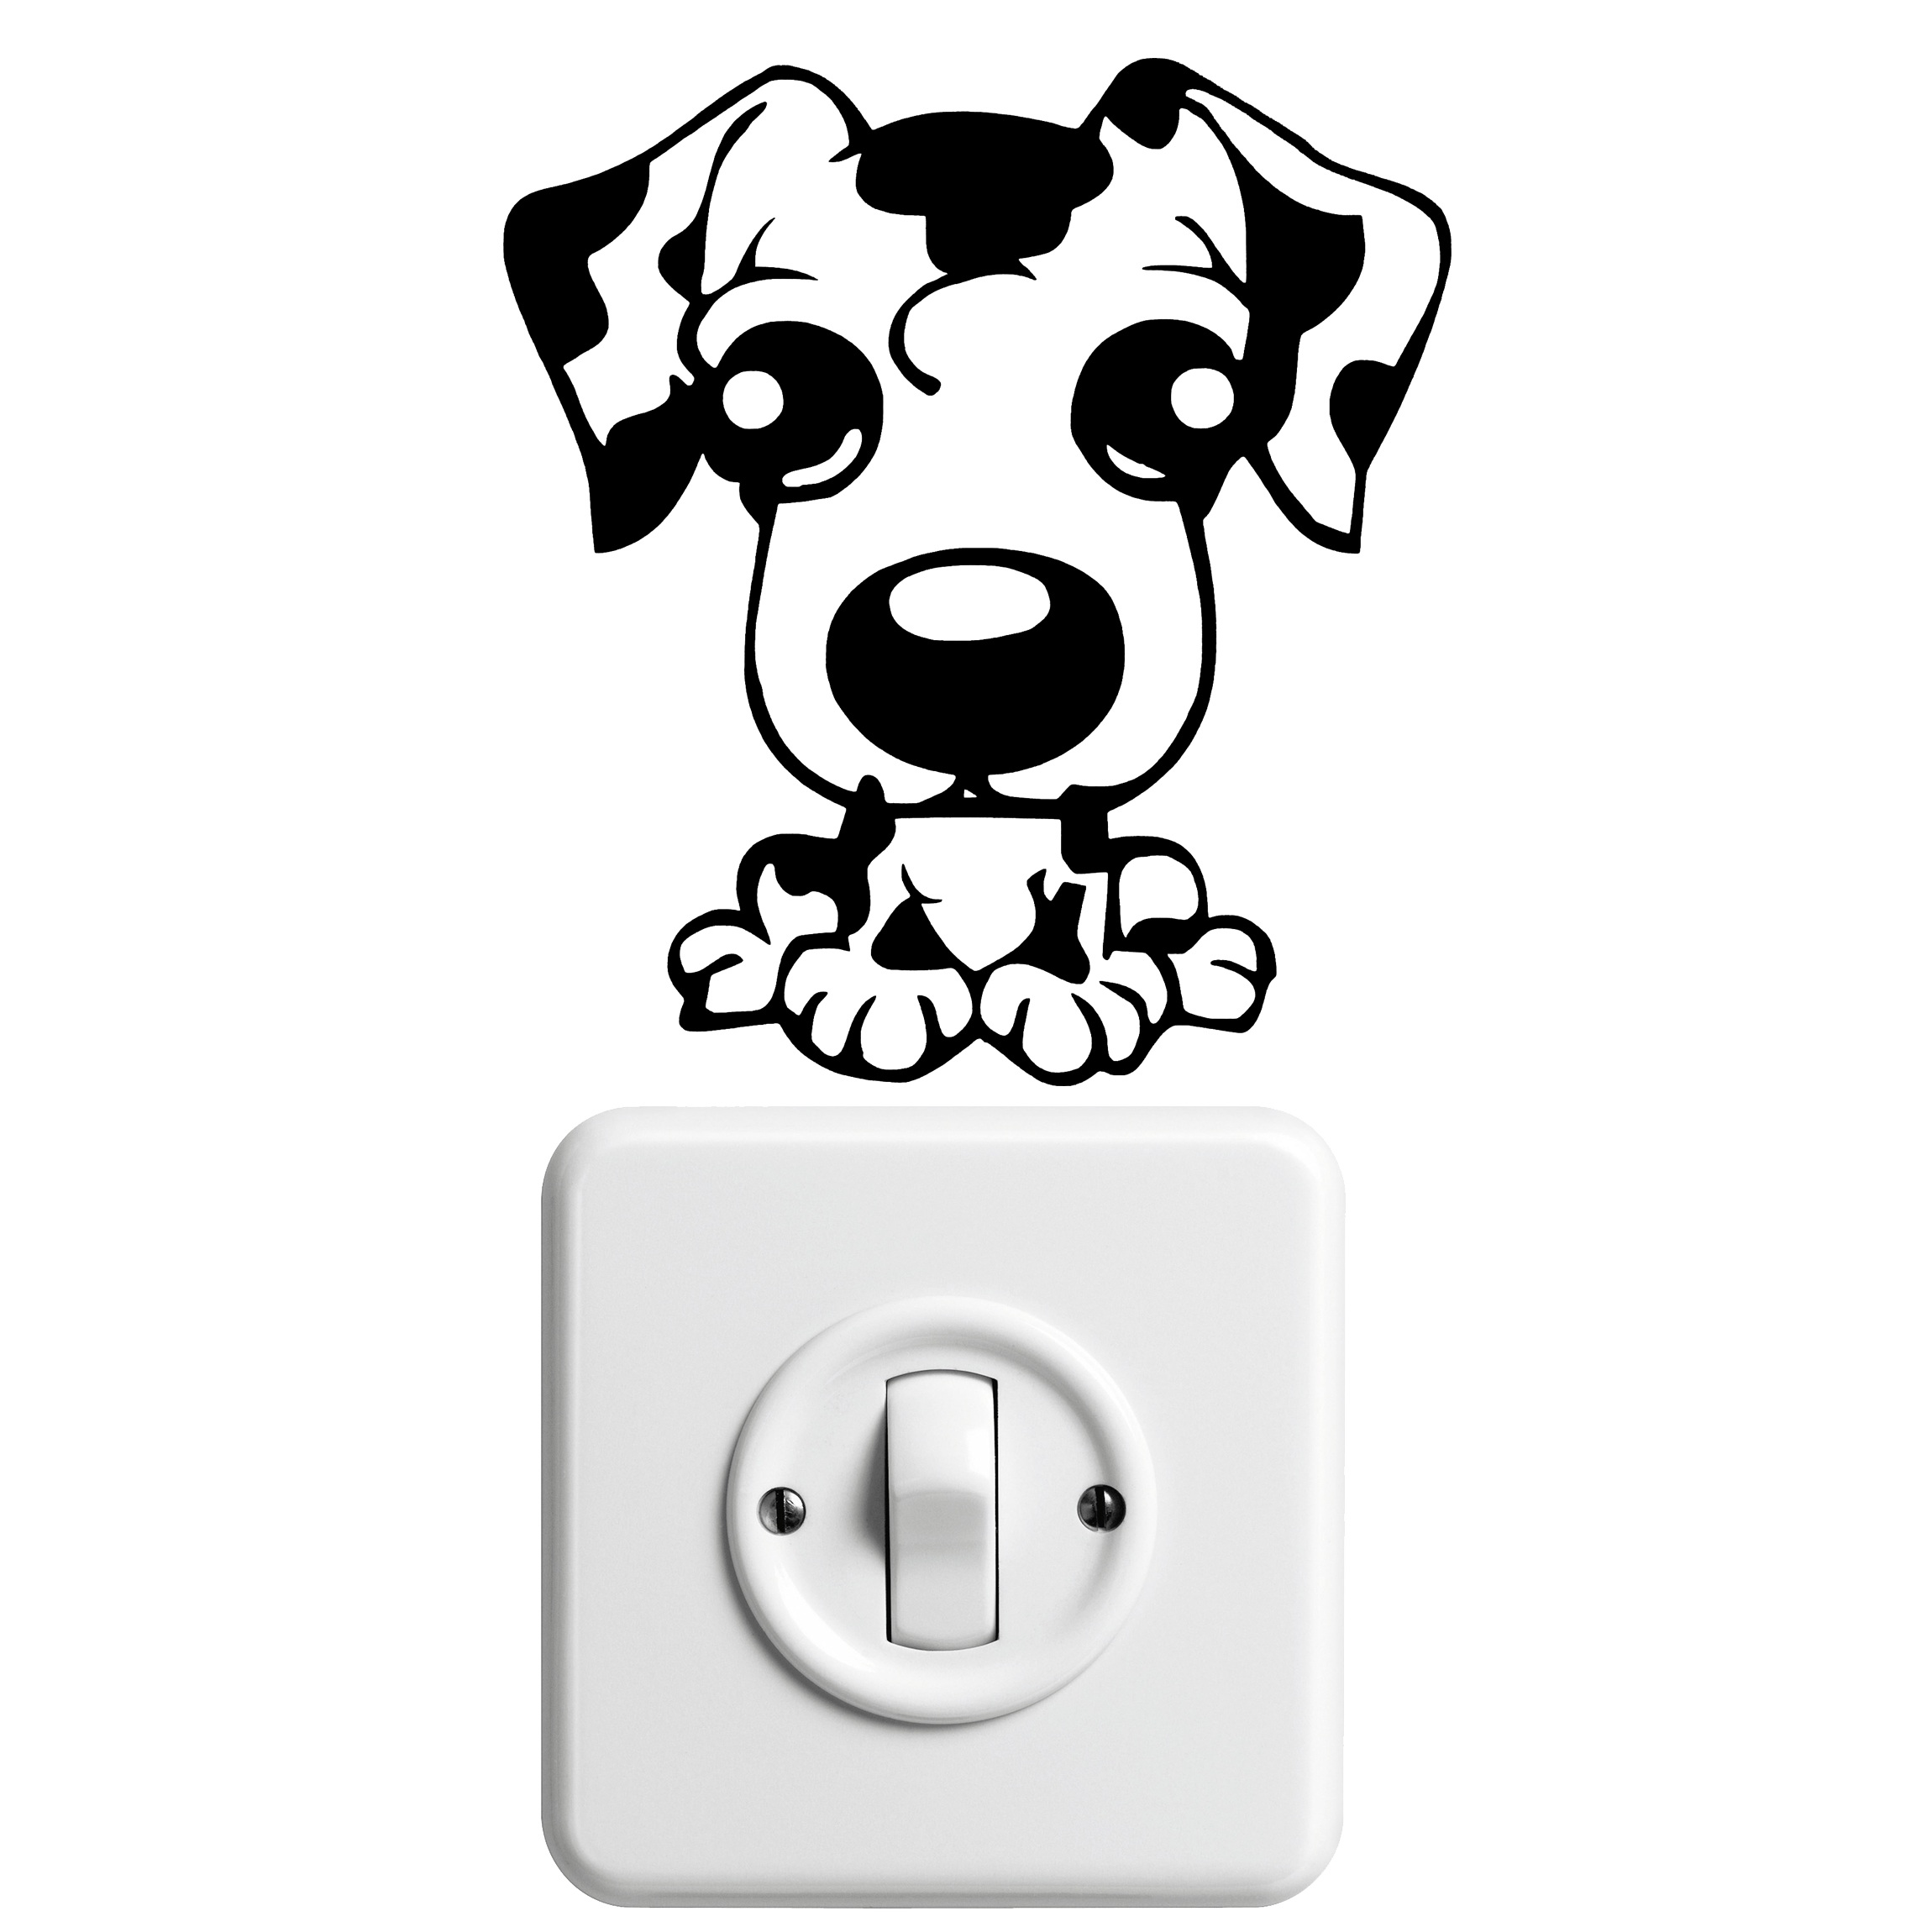 Dalmatians Puppy As A Drawing Free Image